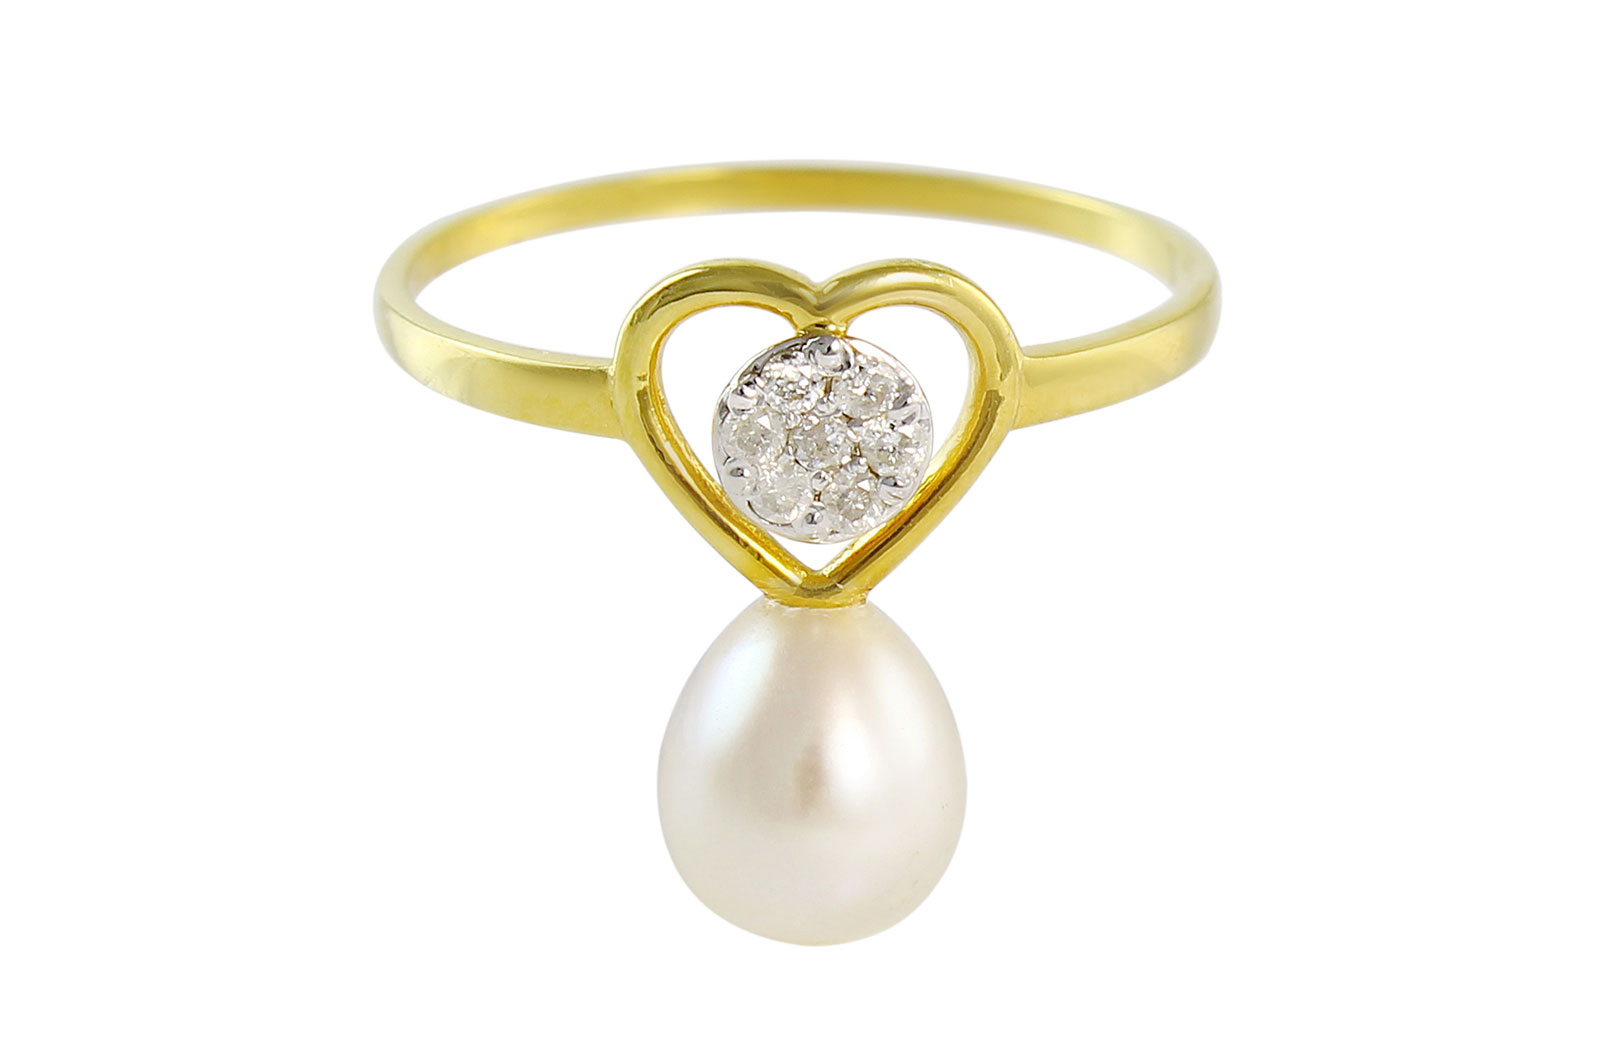 Vera Perla 18K Solid Yellow Gold 0.07Cts Genuine Diamonds and 7mm Pearl   Solitaire  Heart Ring -Size 7 US